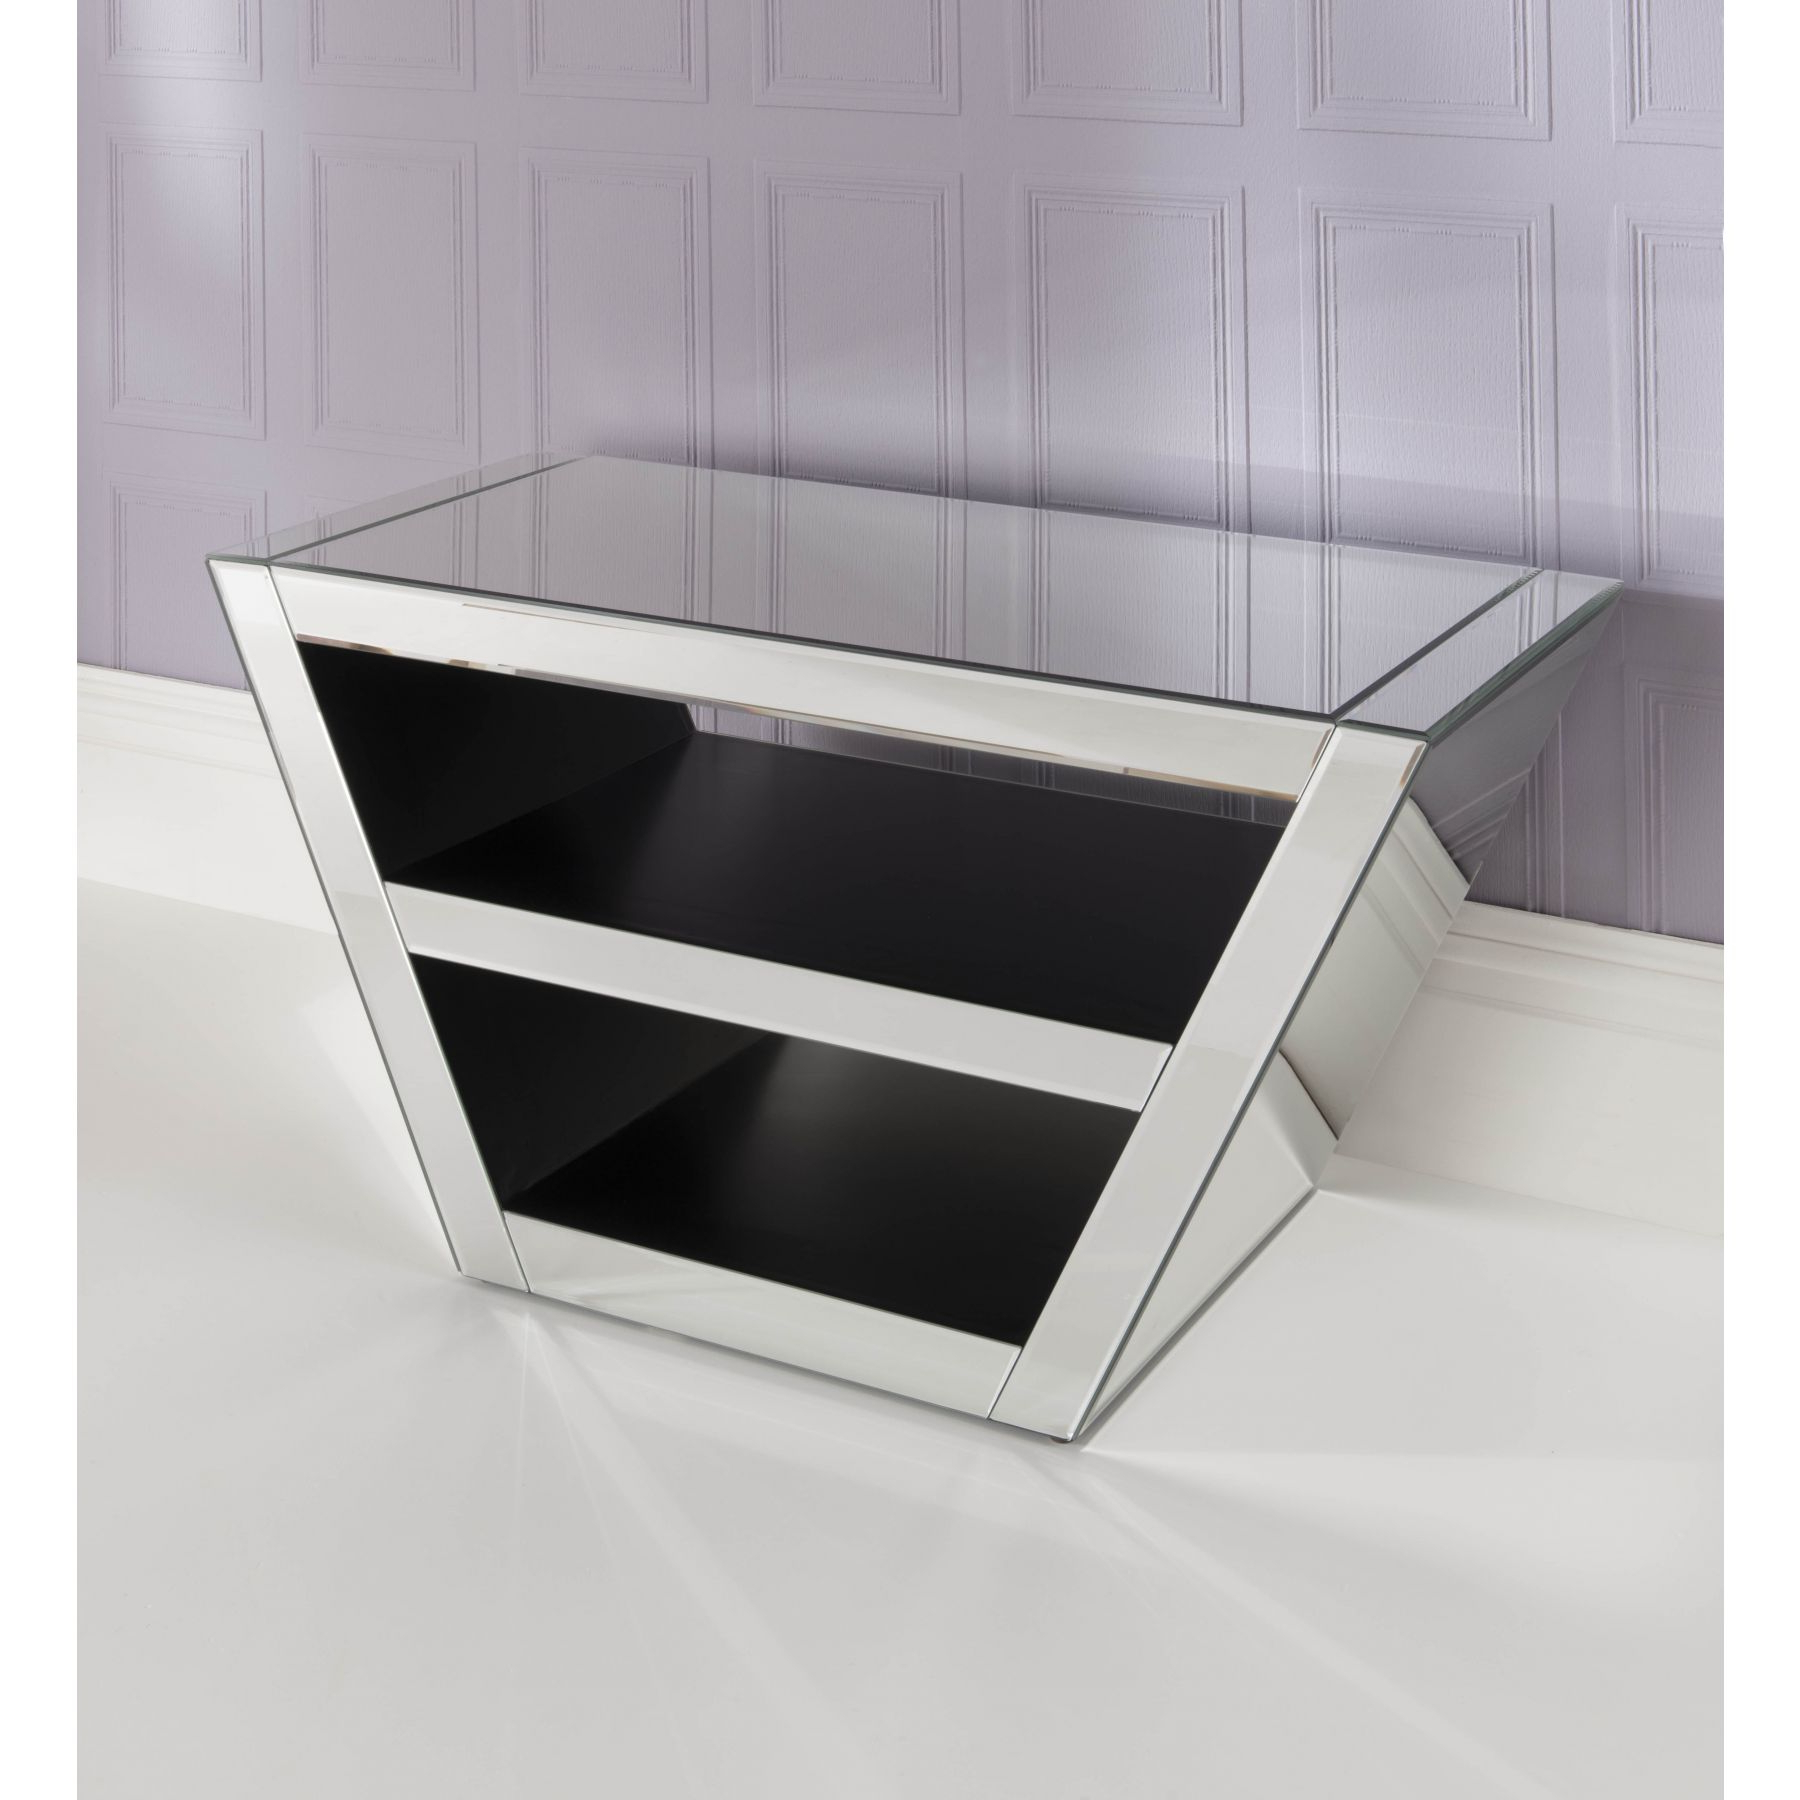 Mirrored Tv Cabinet (View 5 of 20)